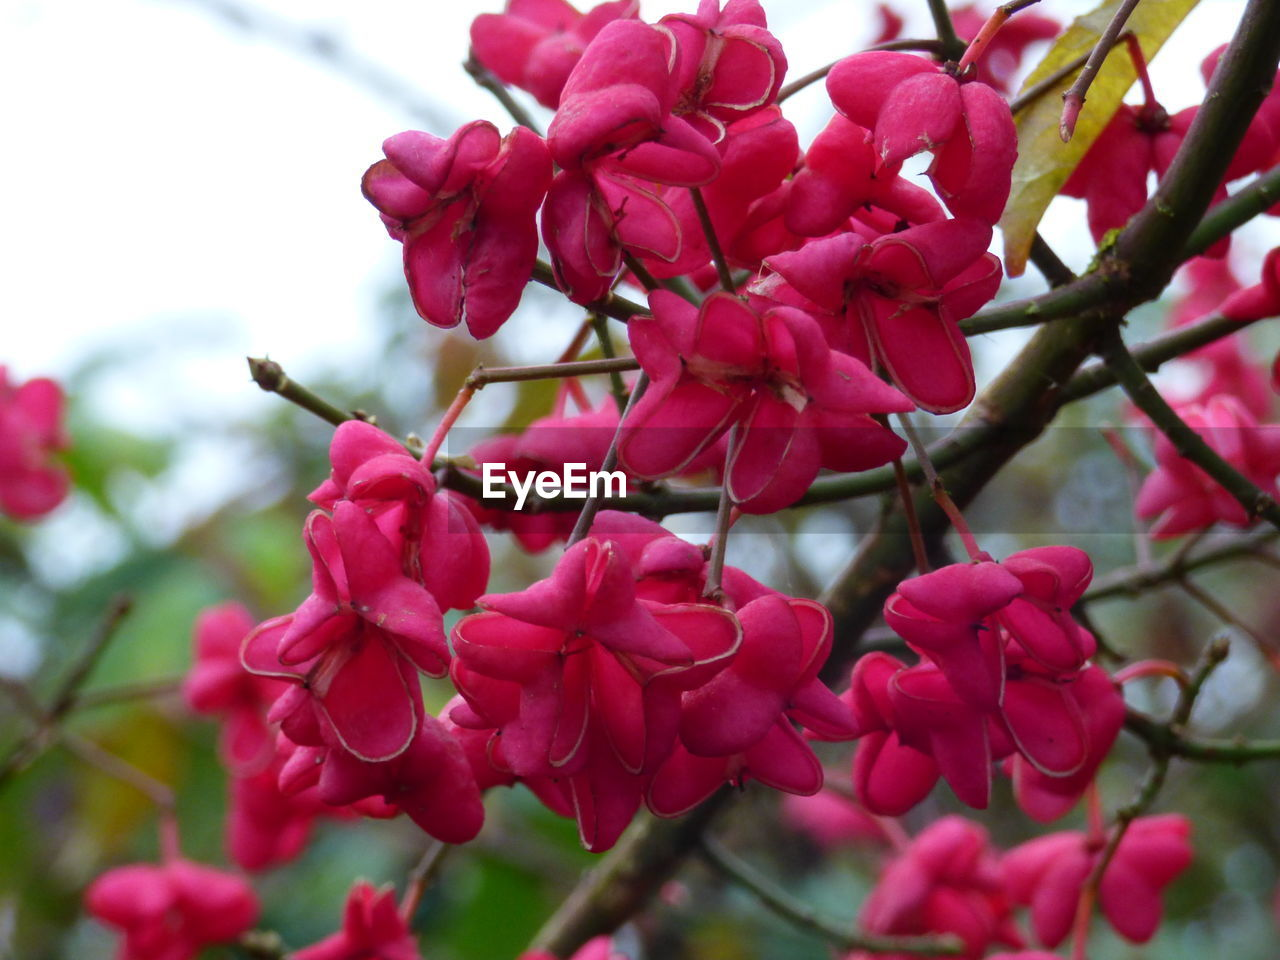 flower, growth, beauty in nature, fragility, nature, petal, tree, branch, freshness, outdoors, close-up, no people, twig, day, springtime, focus on foreground, pink color, flower head, plant, blooming